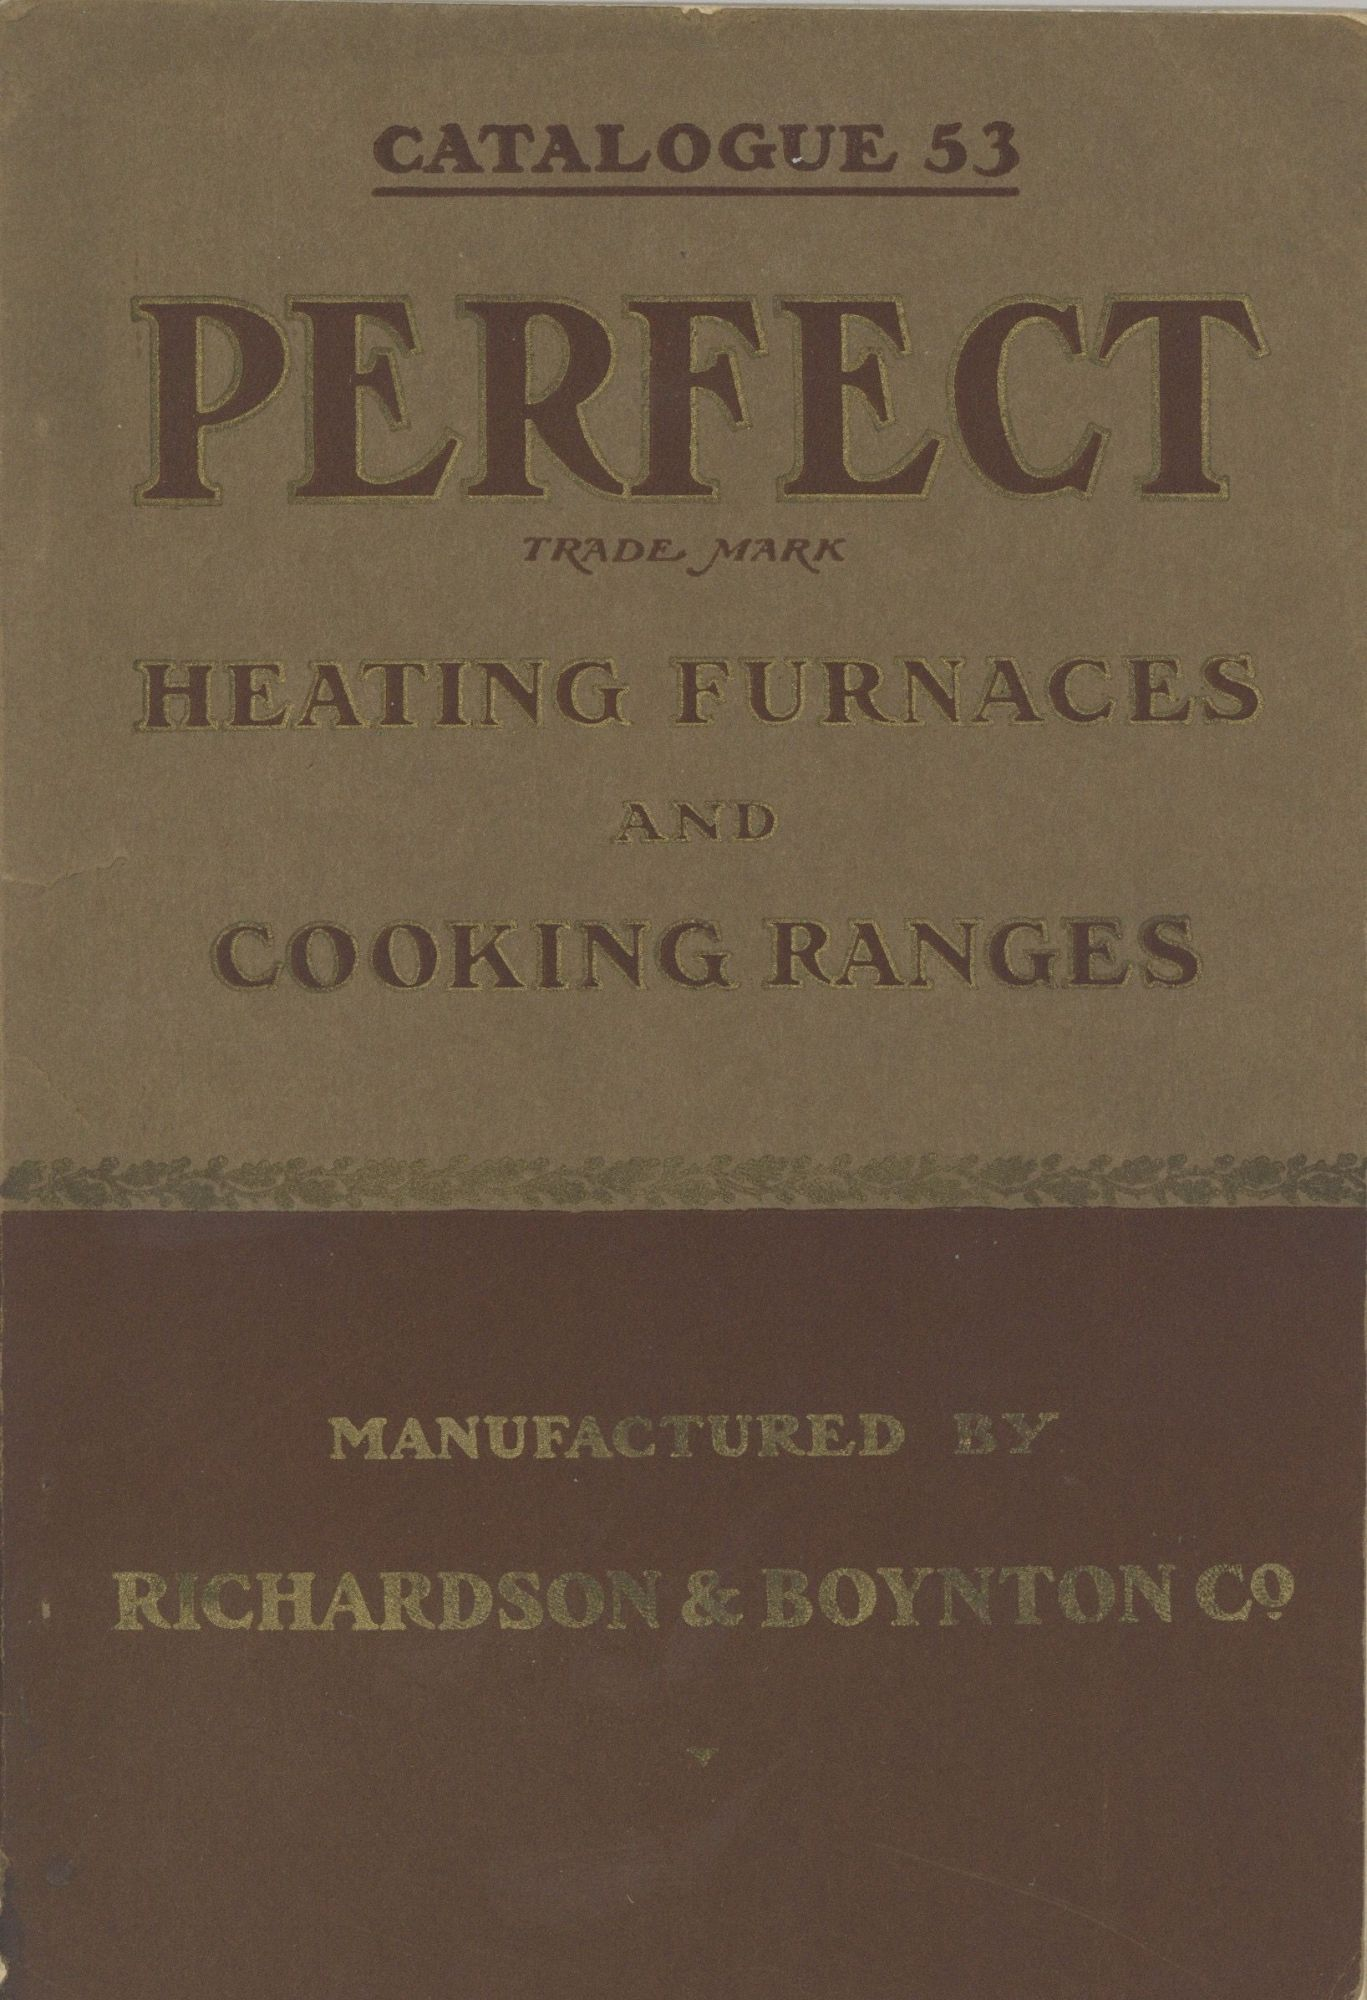 "The Celebrated ""Perfect"" Heating Furnaces and Cooking Ranges: ""Perfect"" Manufactured by Richards & Boynton Co. Catalogue 53. Trade Catalogue - Furnaces, Stoves, Richardson, Boynton Co."